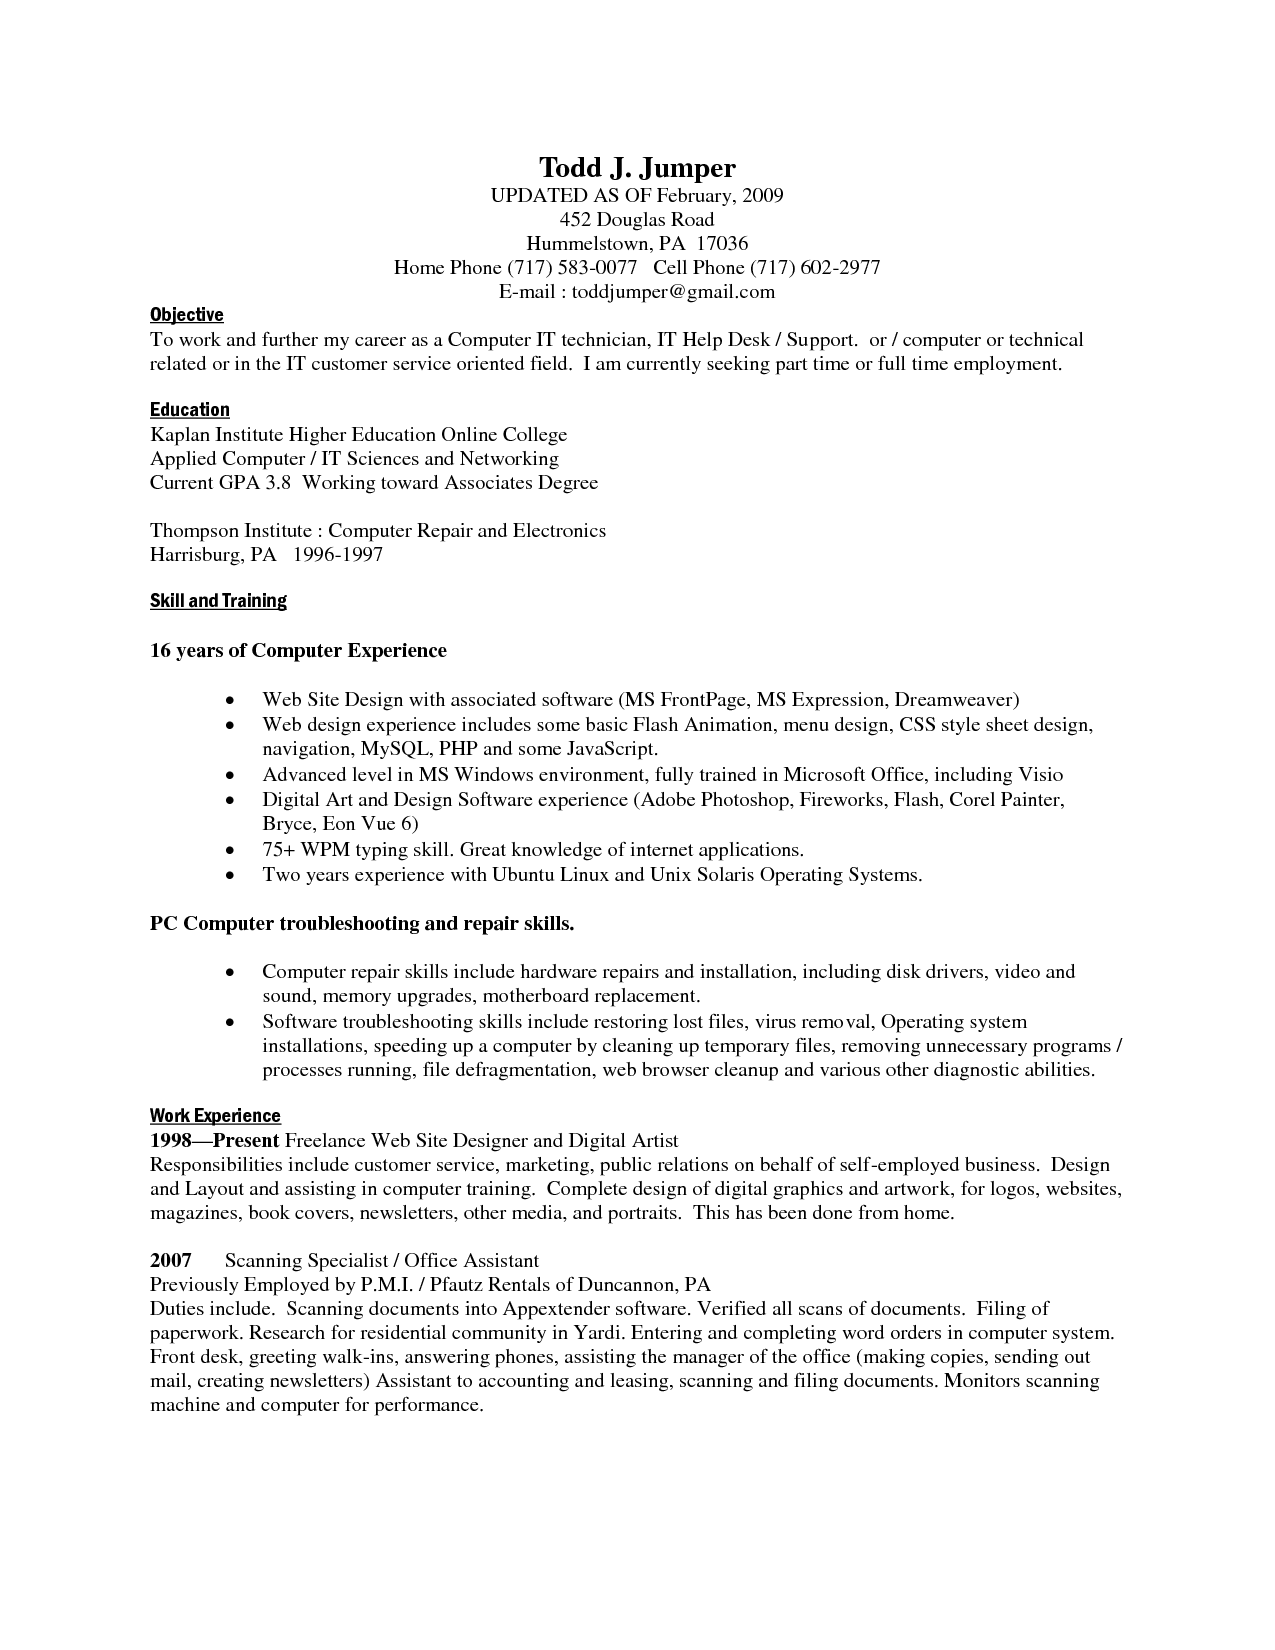 Basic Objective For Resume Computer Skills On Sample Resume  Httpwwwresumecareer